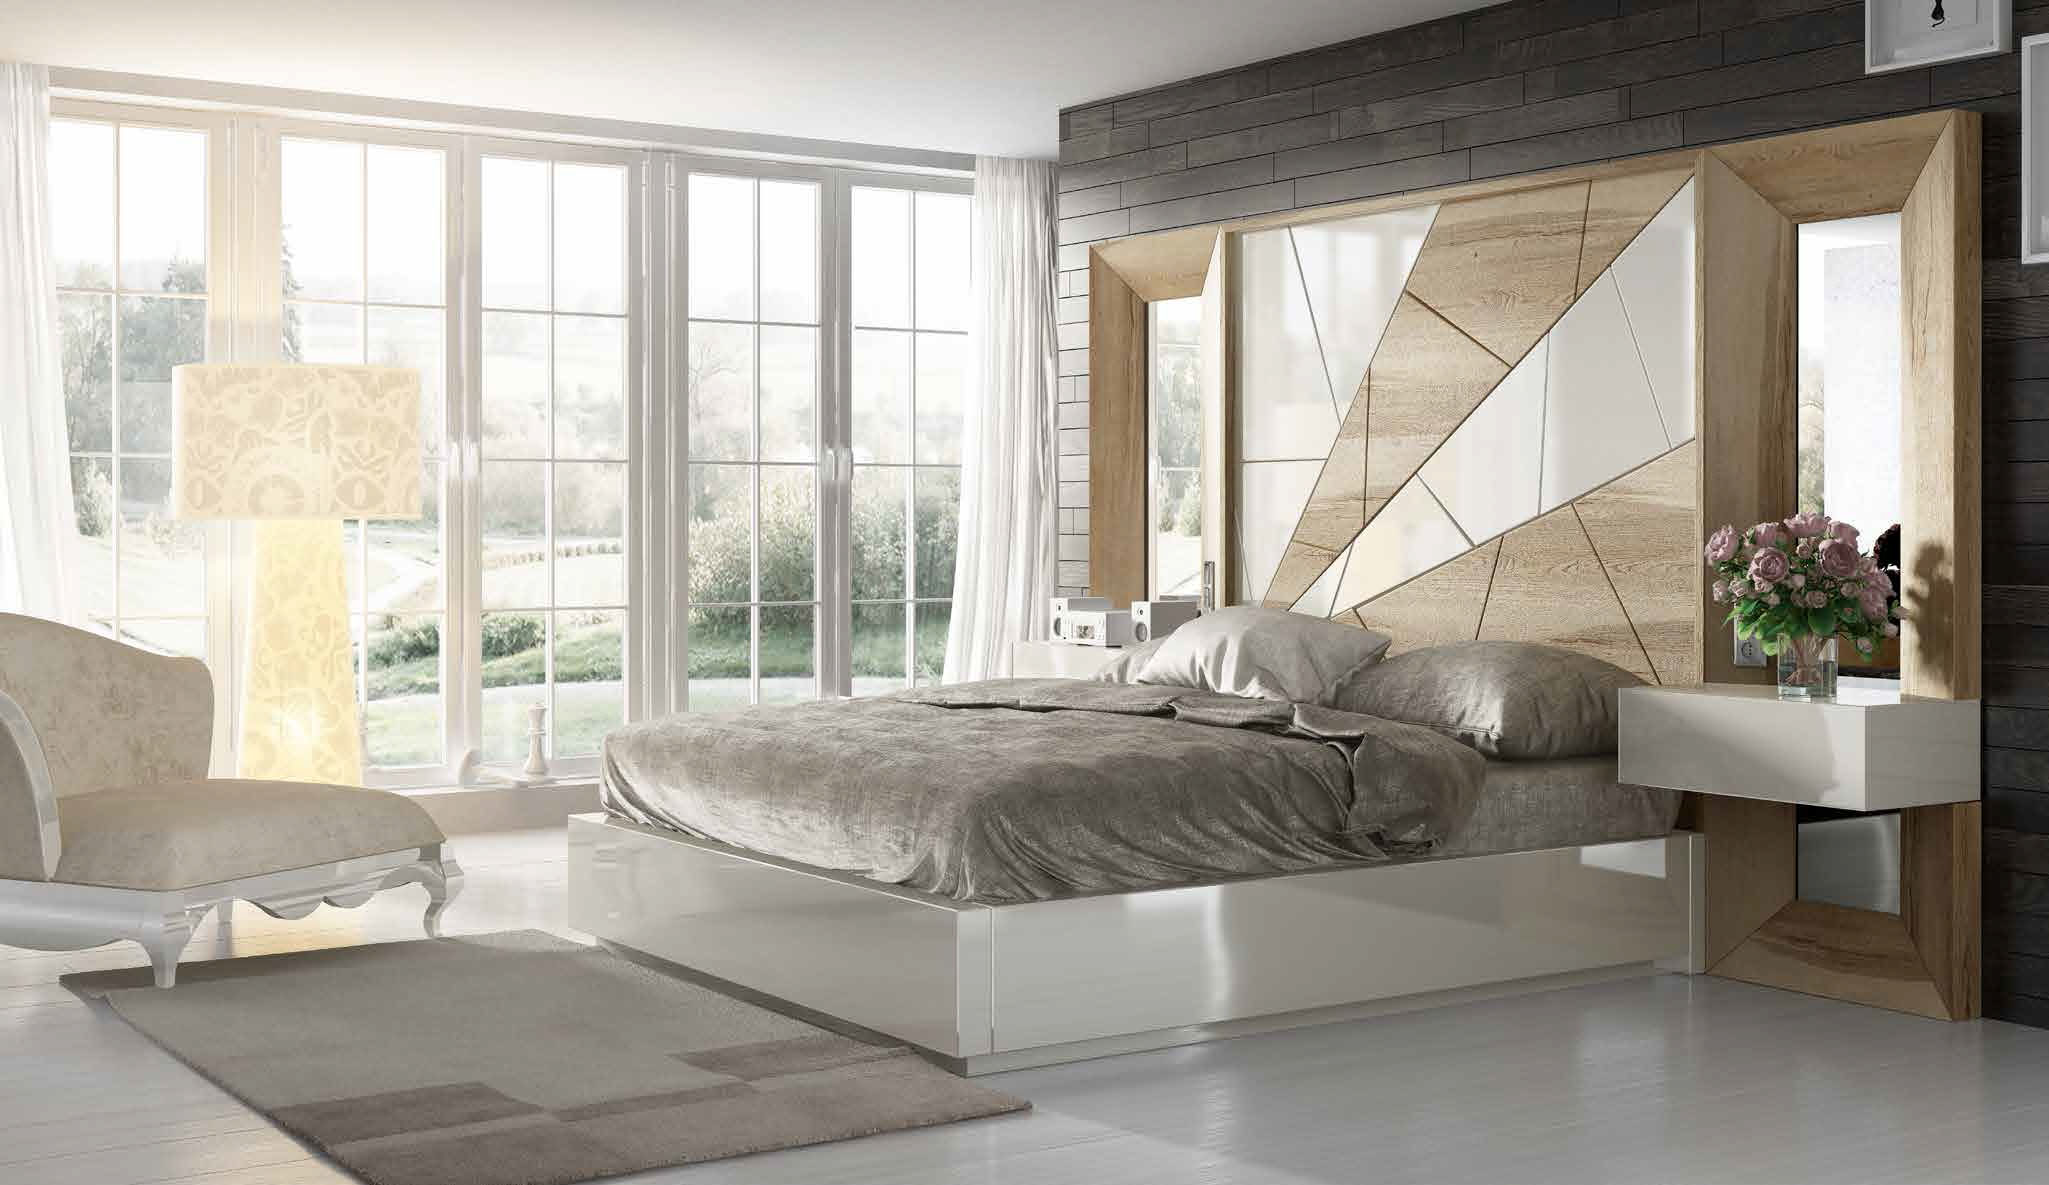 Brands Franco Furniture Bedrooms vol1, Spain DOR 32